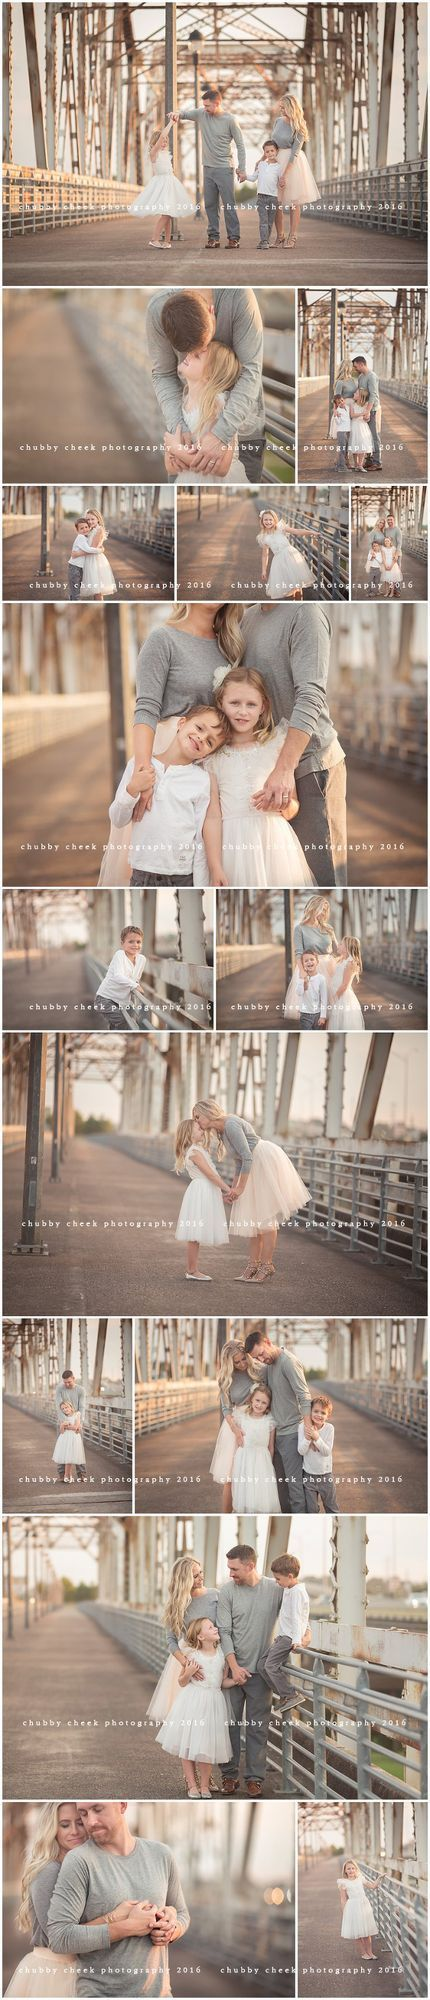 This is what family sessions are all about! – the woodlands texas family photographer chubby cheek photography.